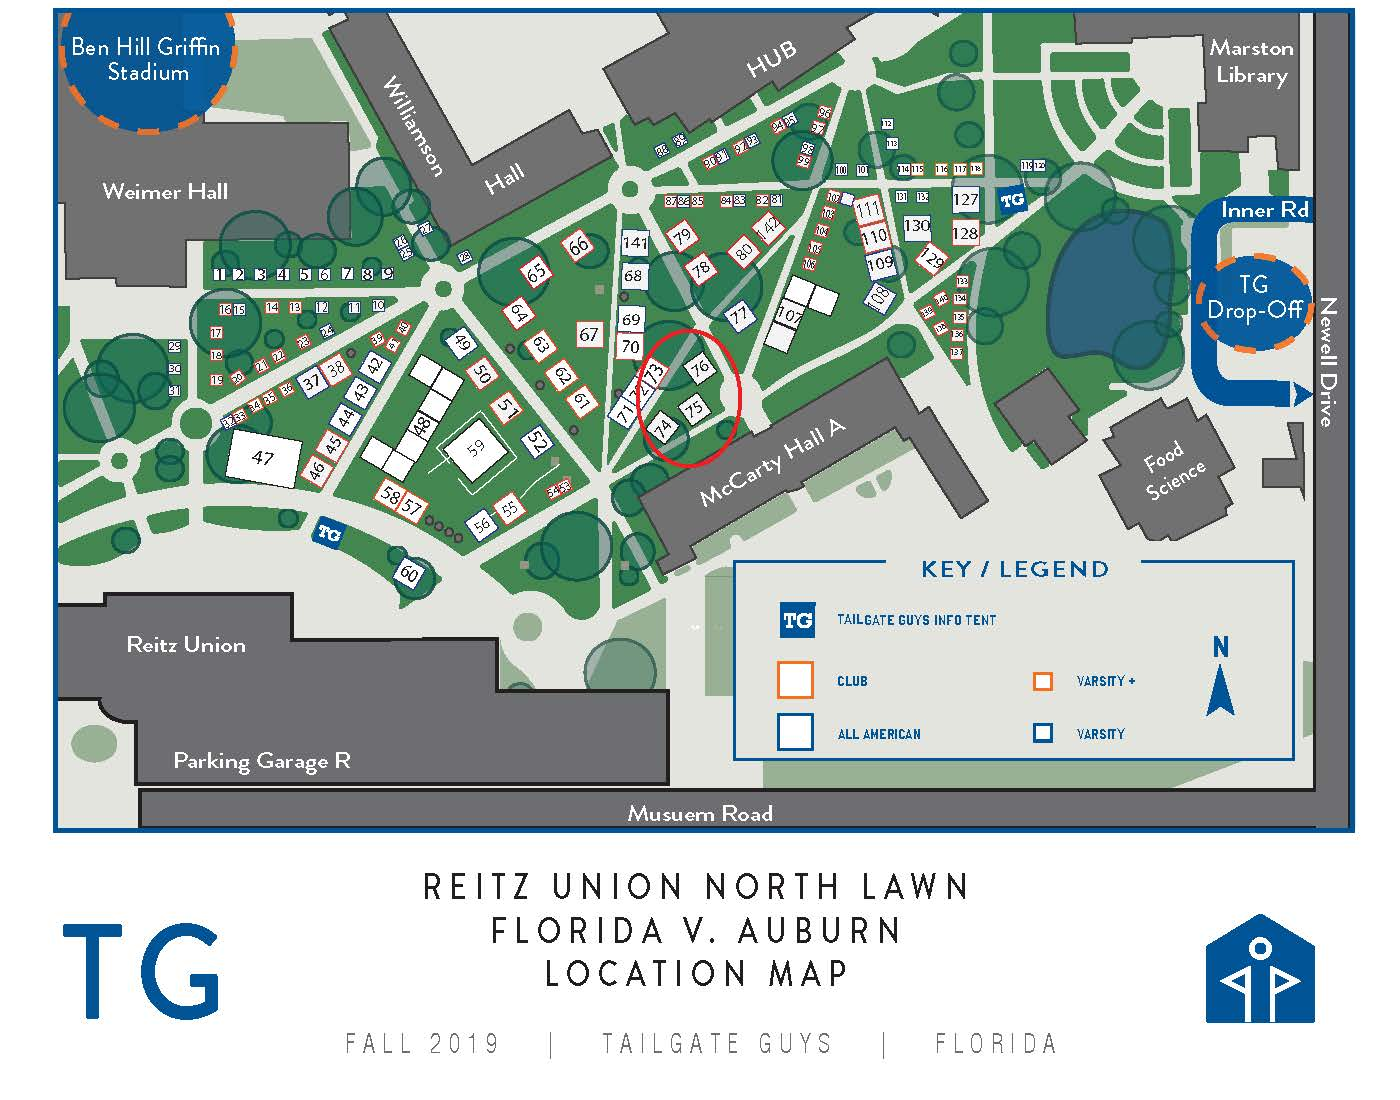 Alumni Tailgate at Florida - map